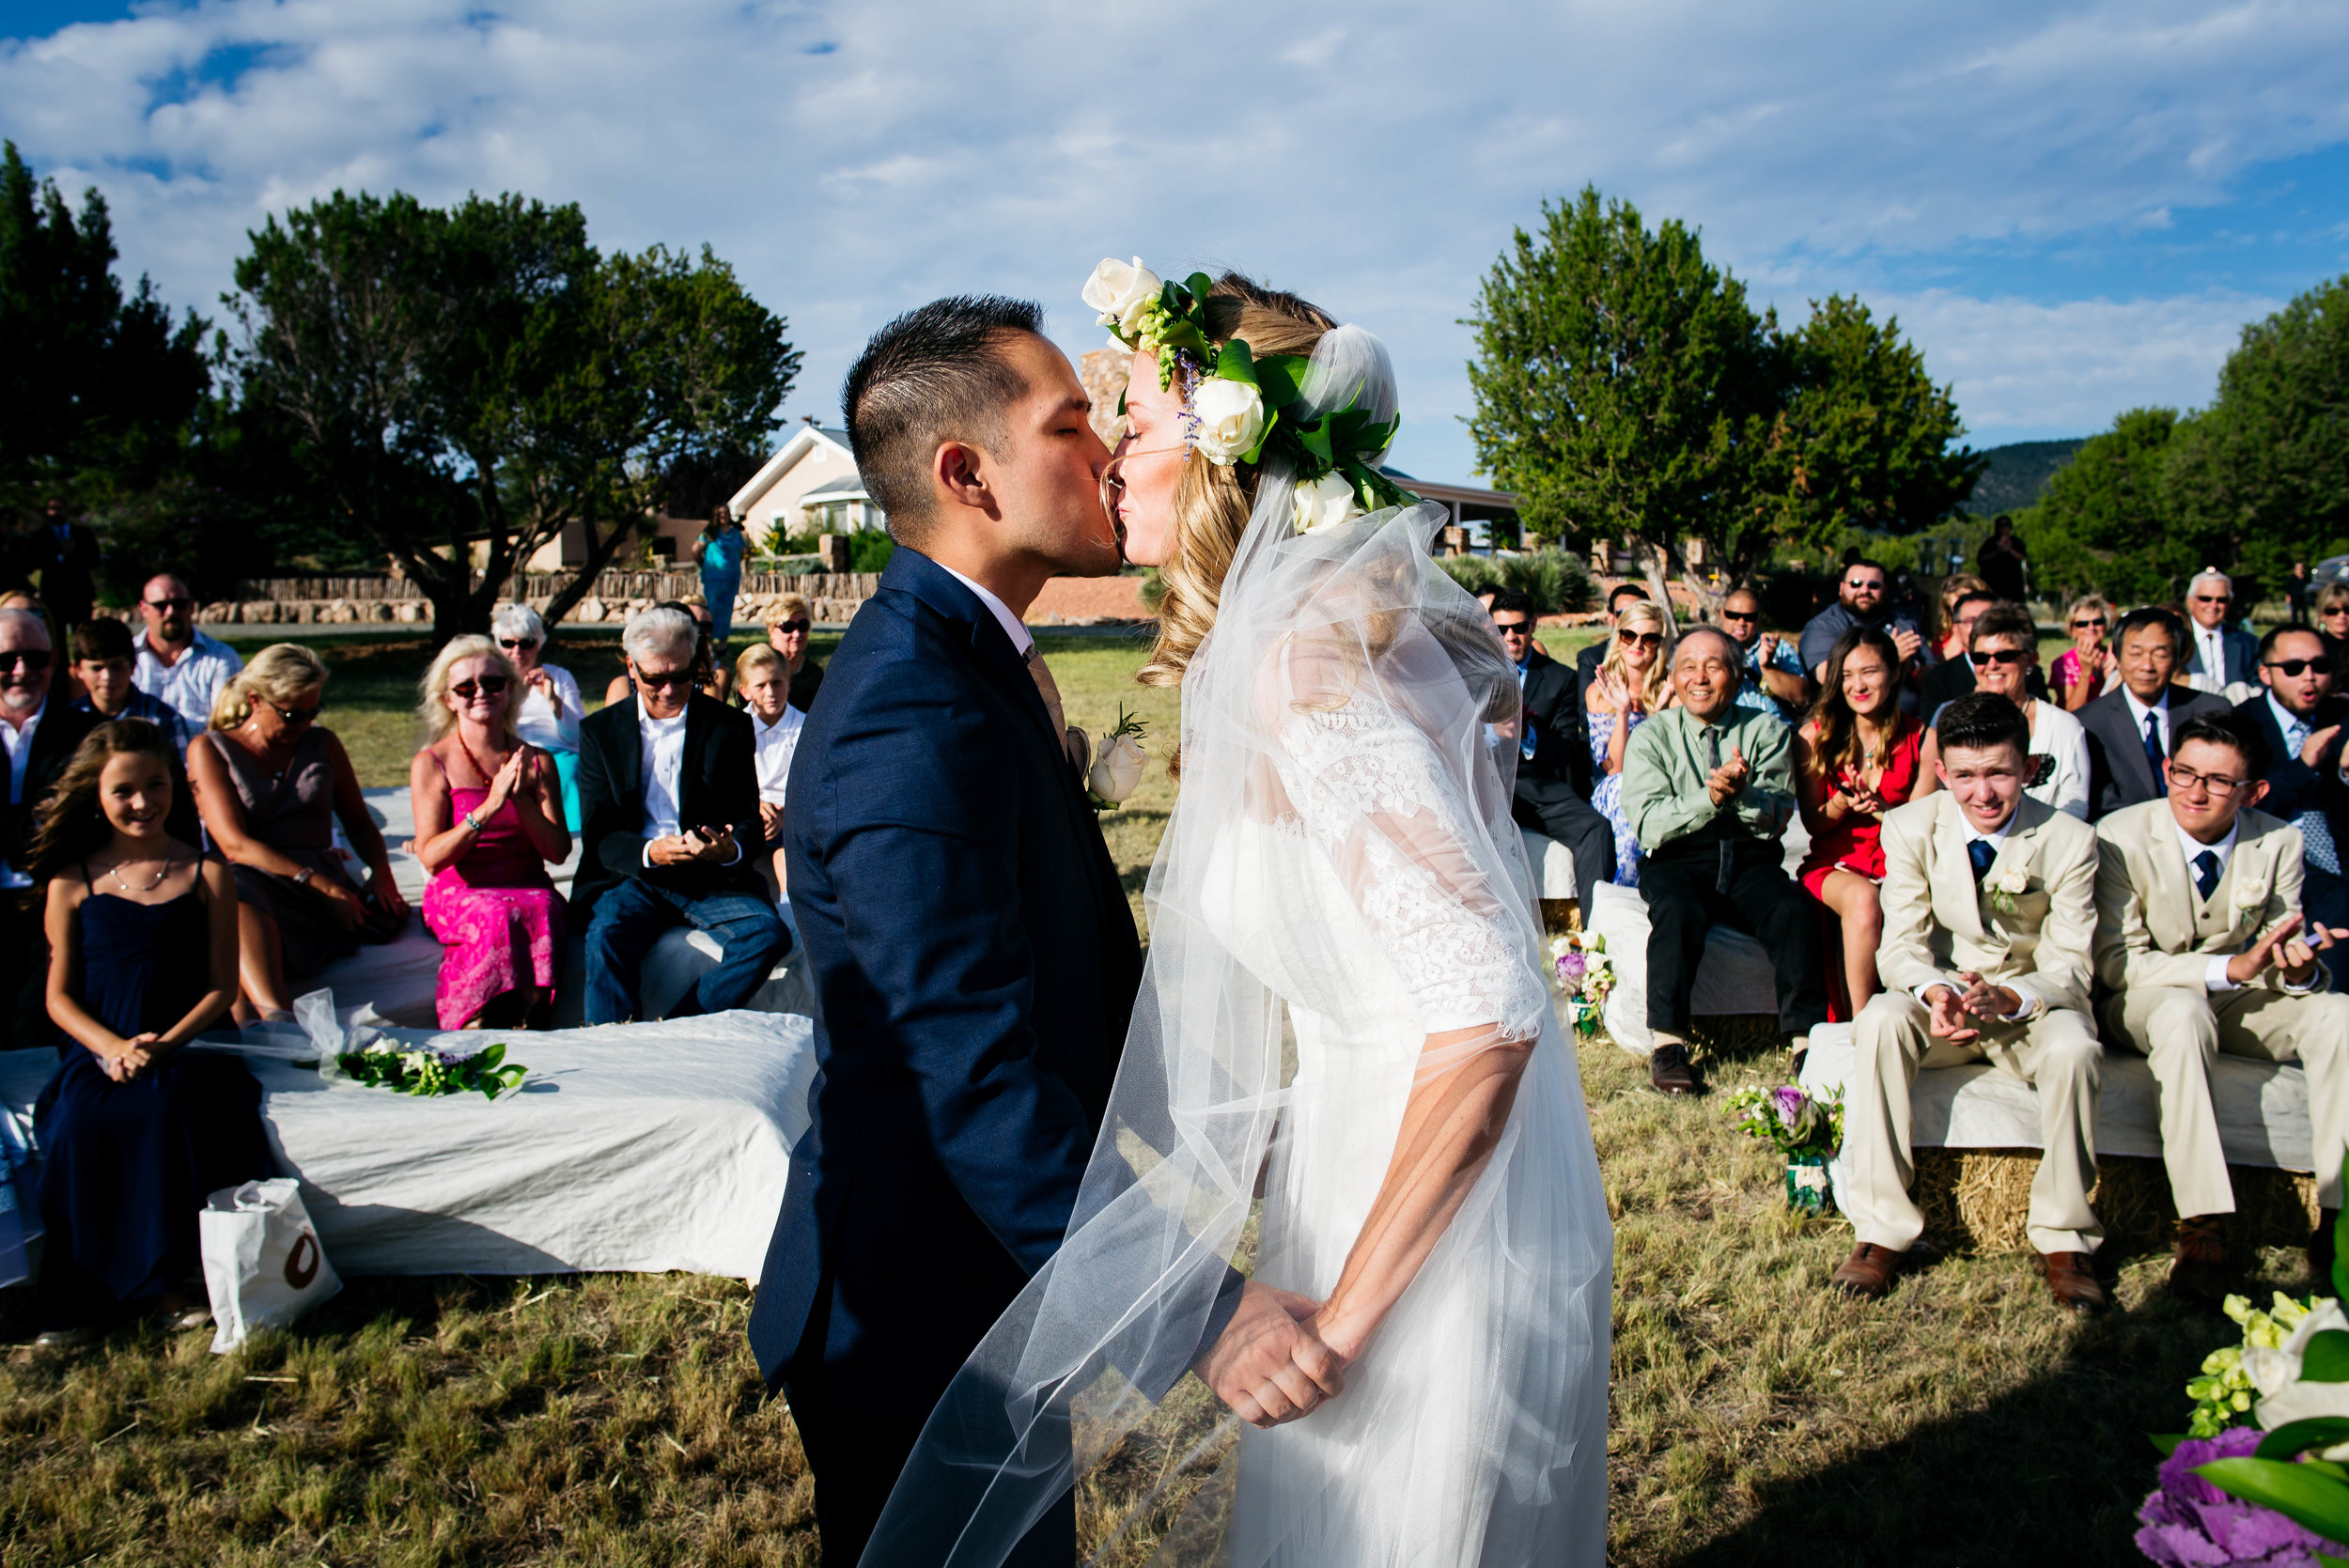 Extended Play Photography documentary wedding photography in Albuquerque, New Mexico. Capitan wedding ceremony candid.